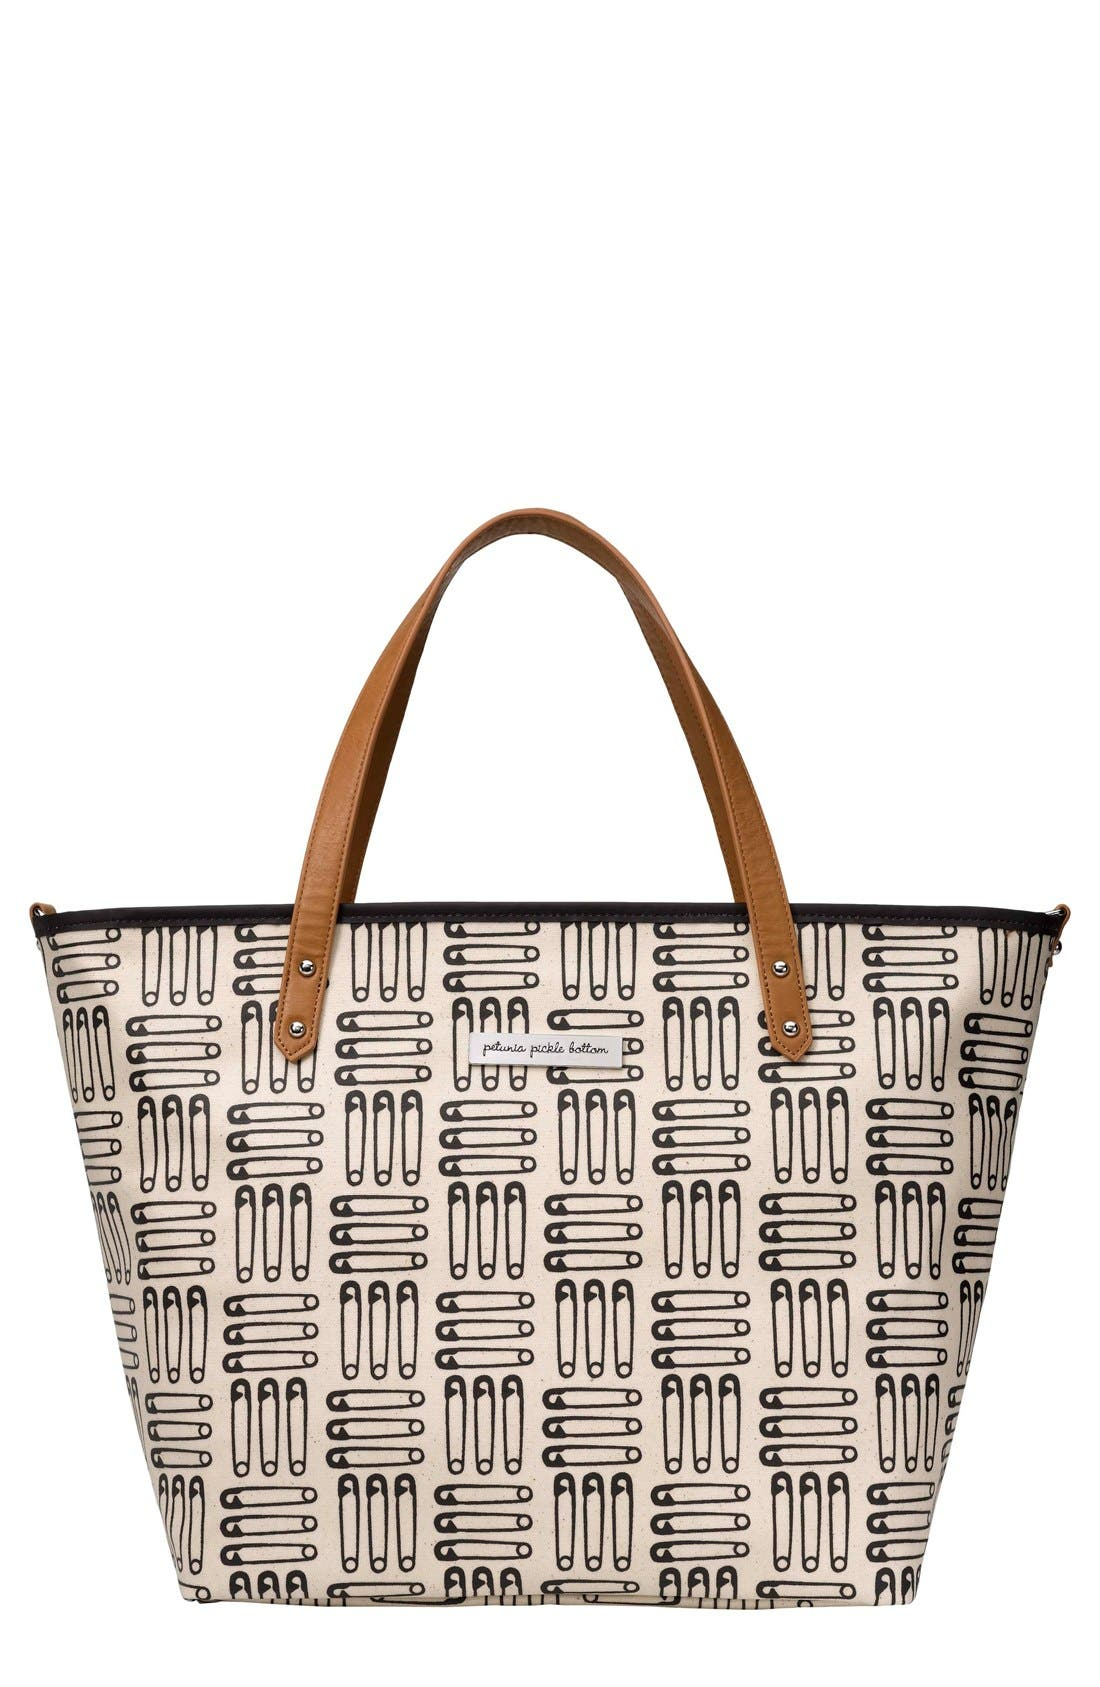 Petunia Pickle Bottom 'Downtown' Glazed Canvas Tote